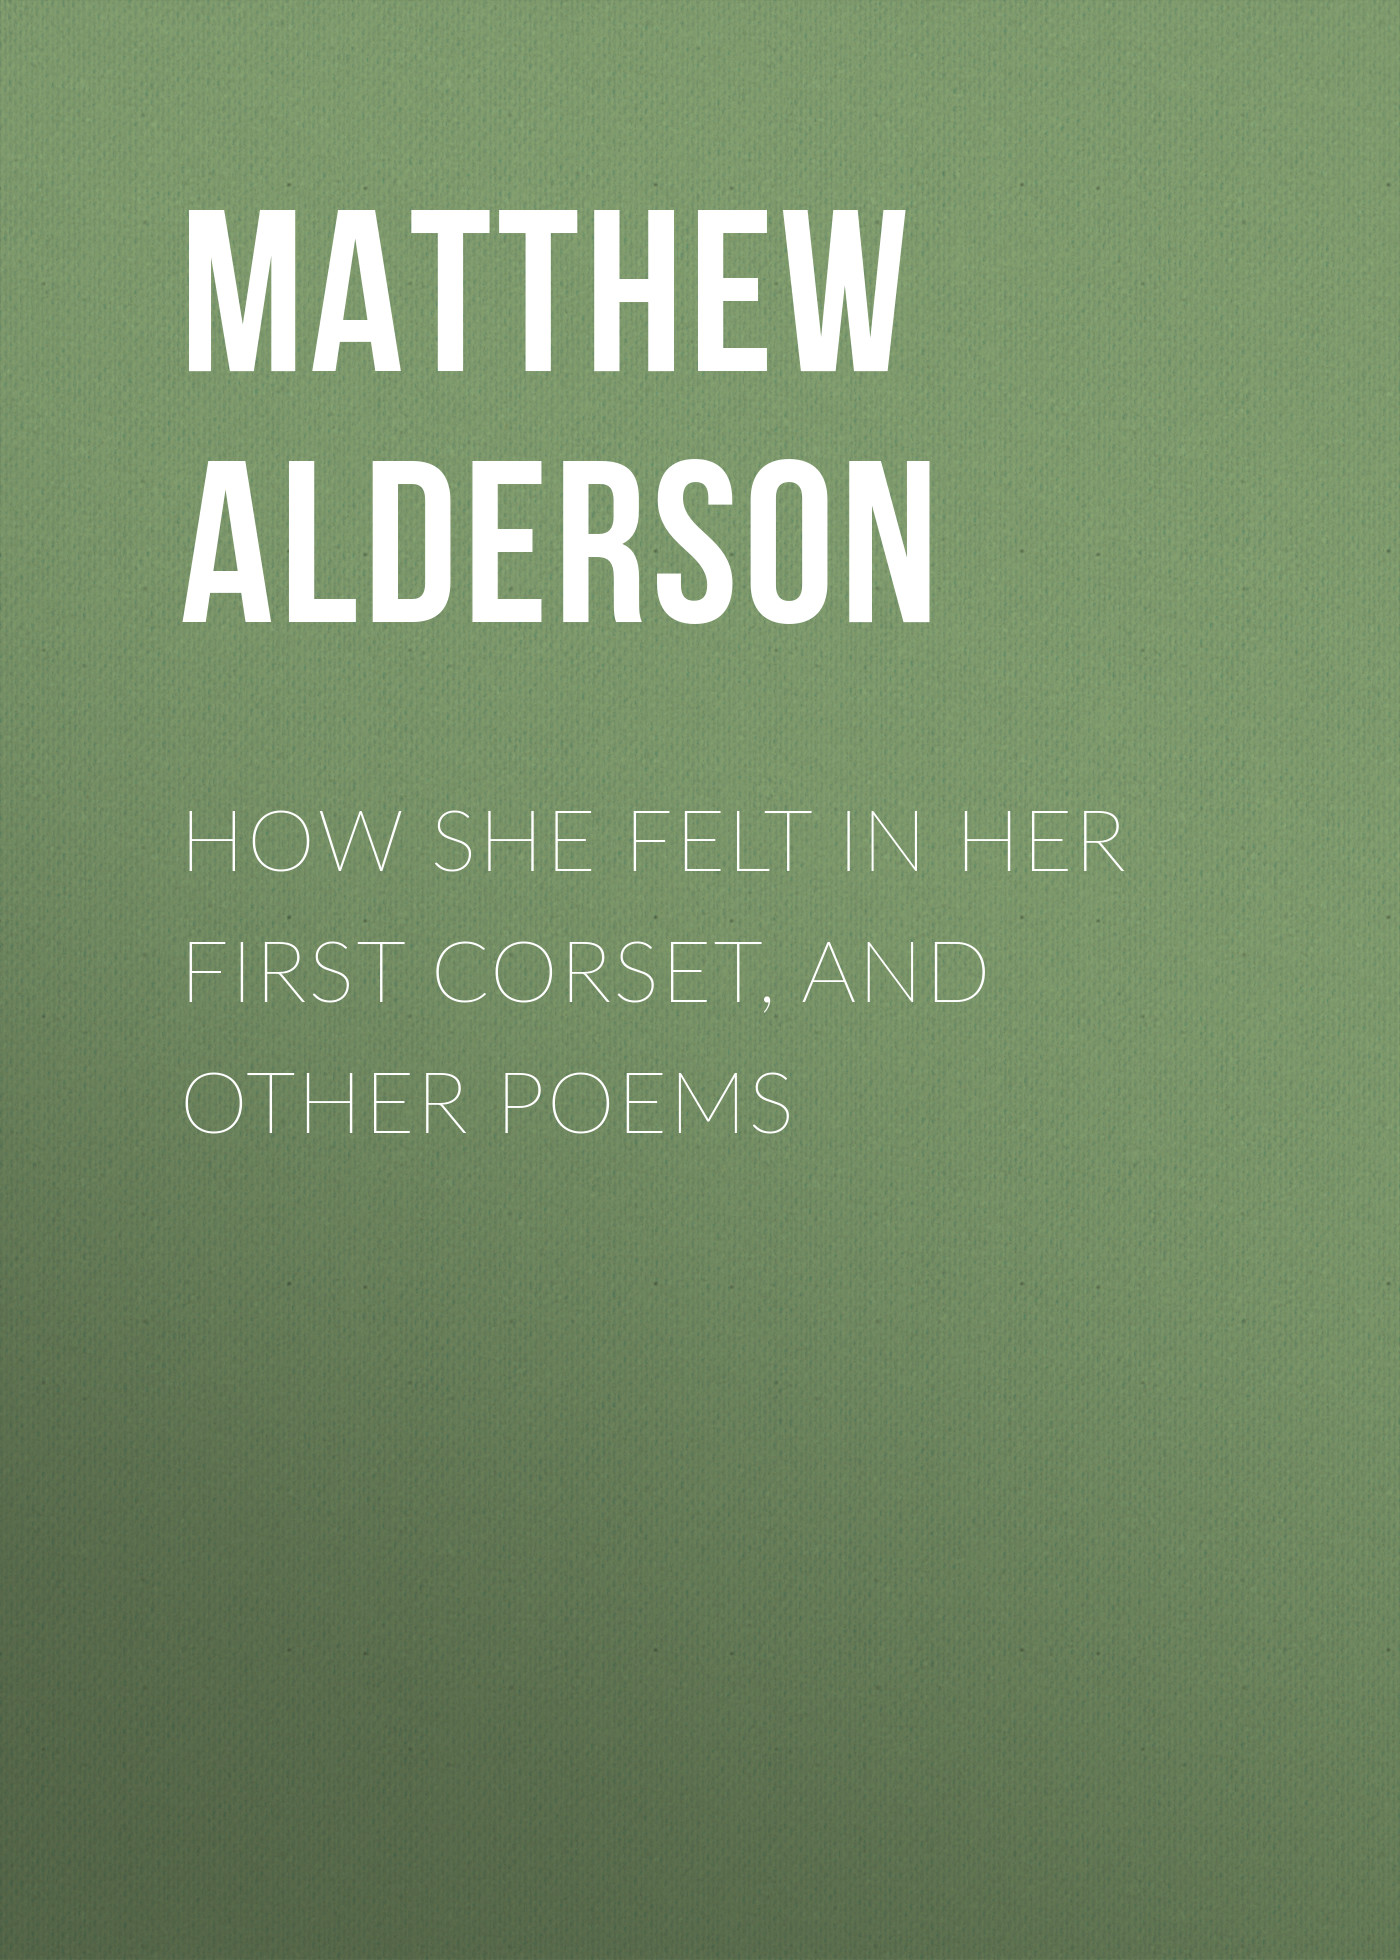 Alderson Matthew W. How She Felt in Her First Corset, and Other Poems seeger matthew w theorizing crisis communication